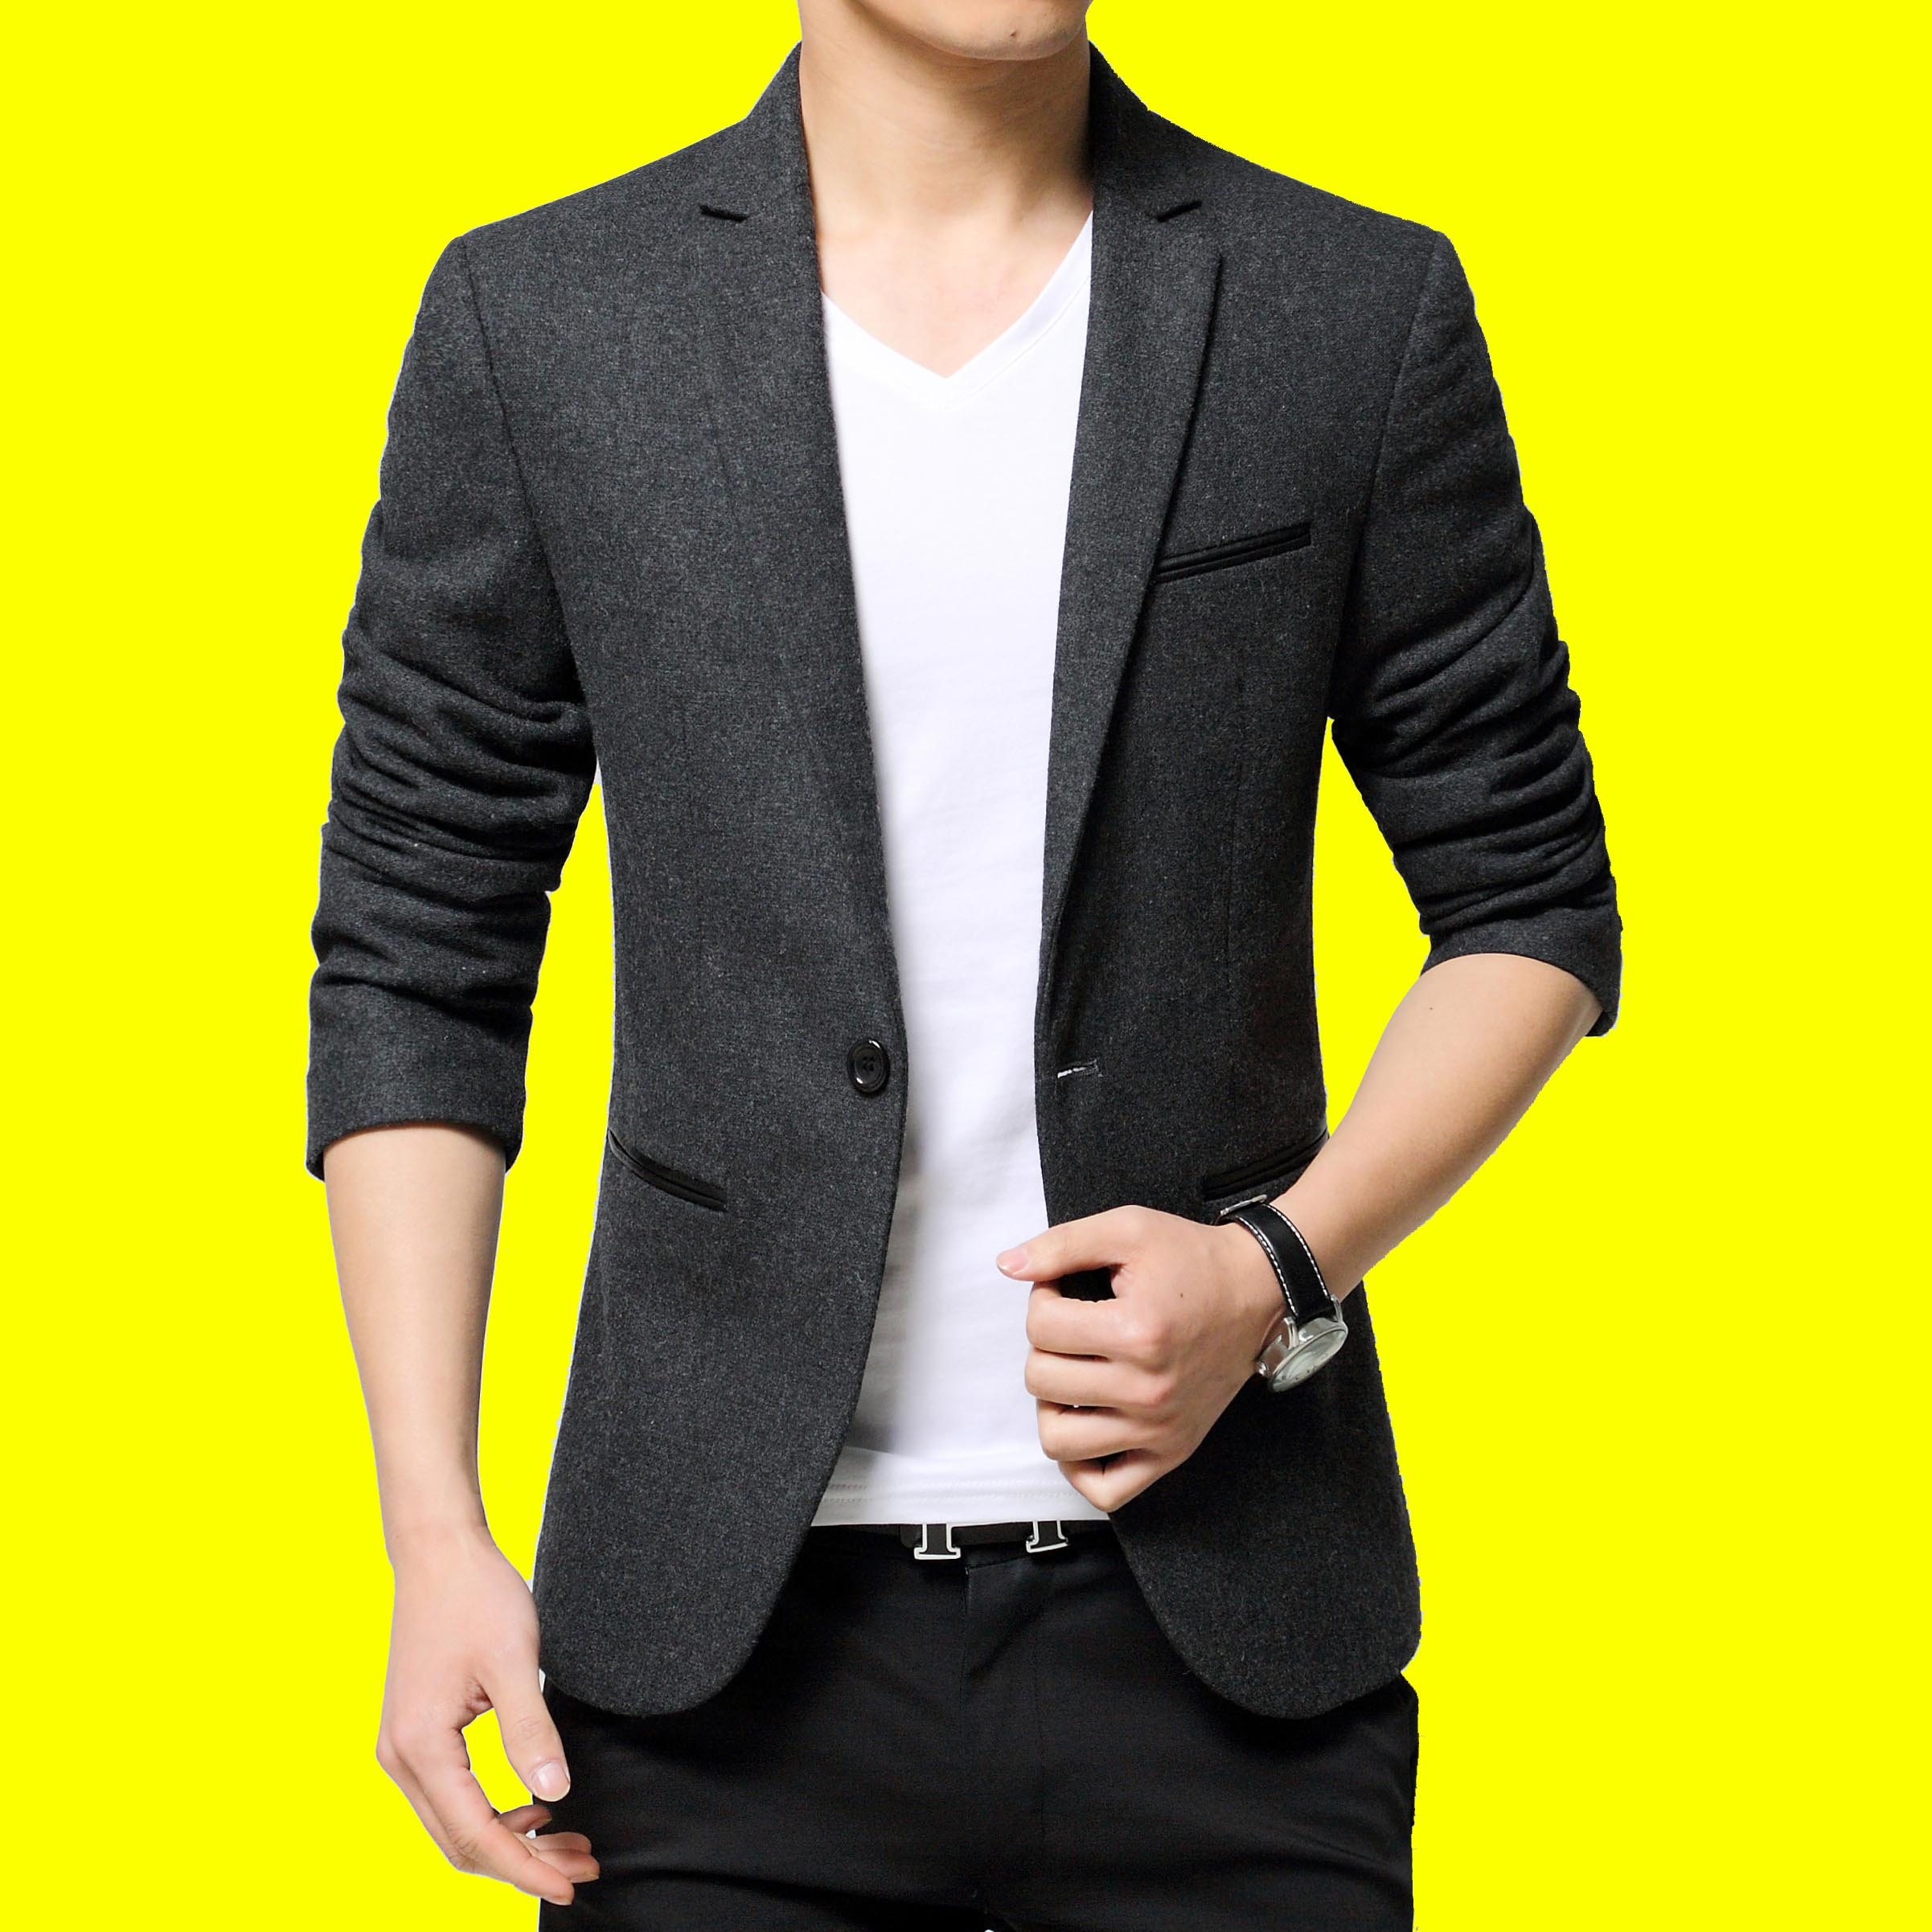 2020 Male Fashion Cloth Suits, Cultivate One's Morality The New Handsome Leisure Suit HO